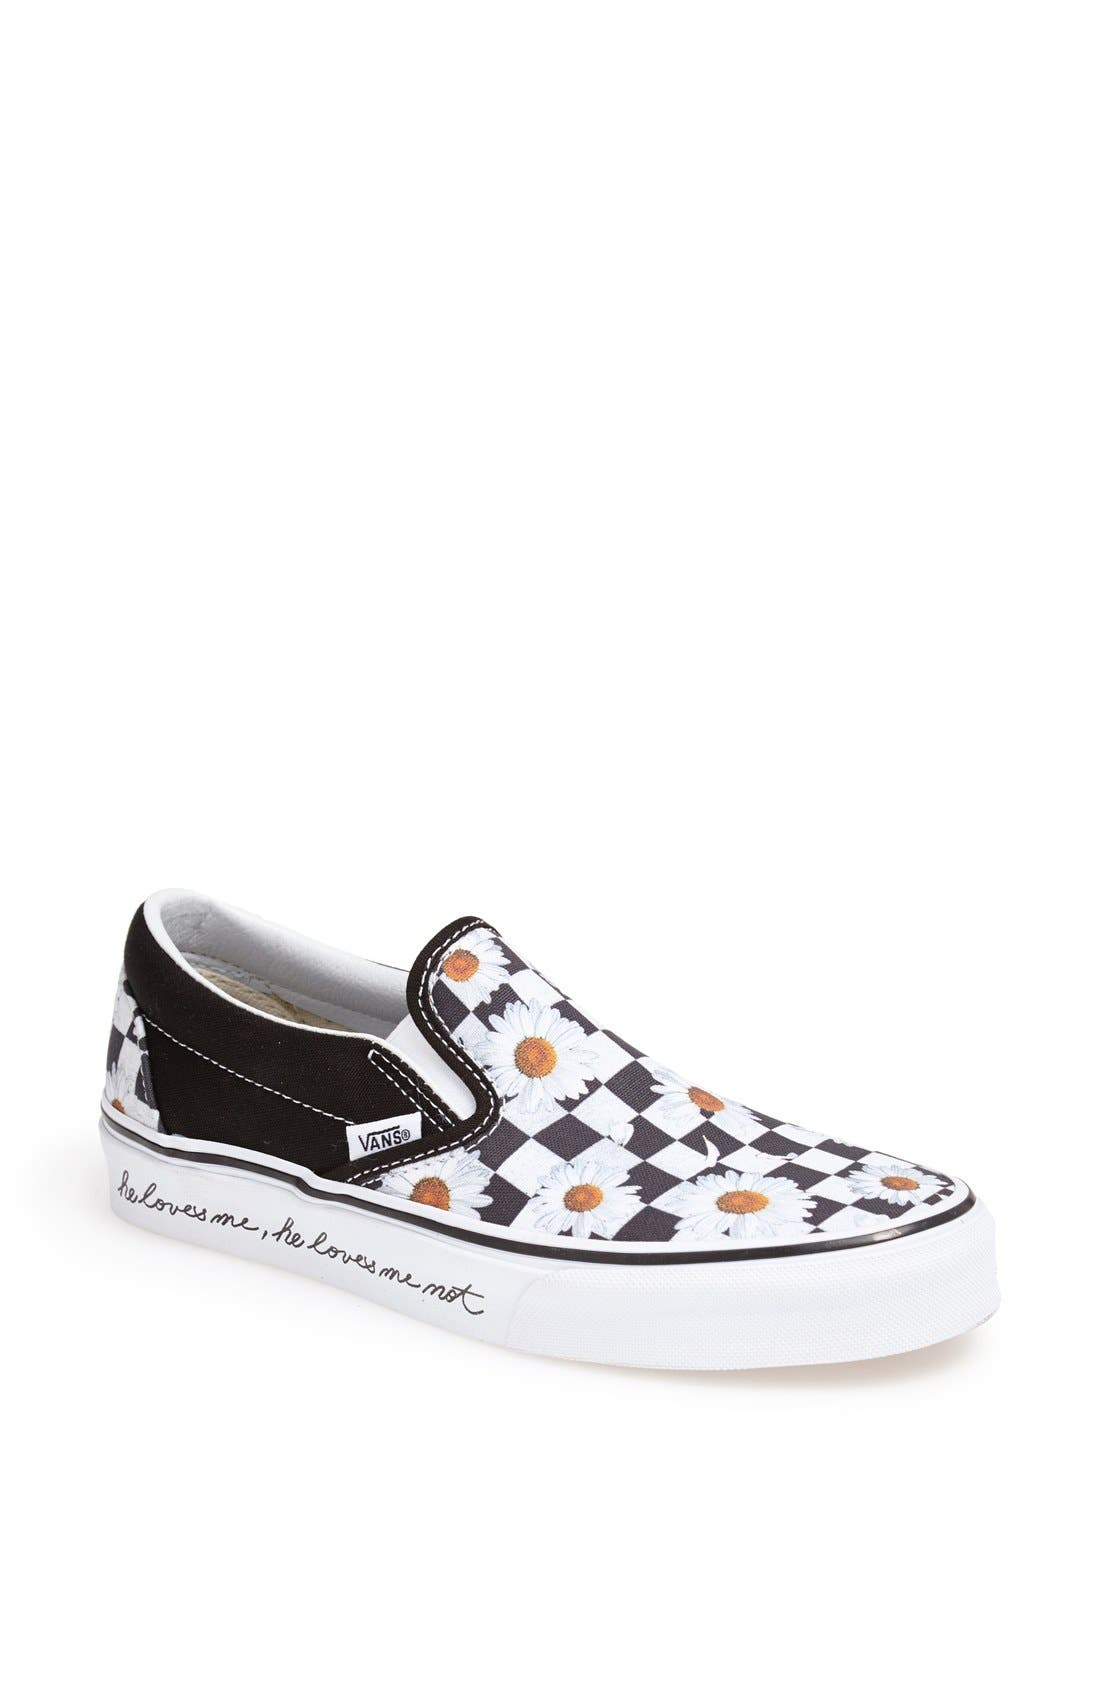 Main Image - Vans 'He Loves Me, He Loves Me Not' Slip-On Sneaker (Women)